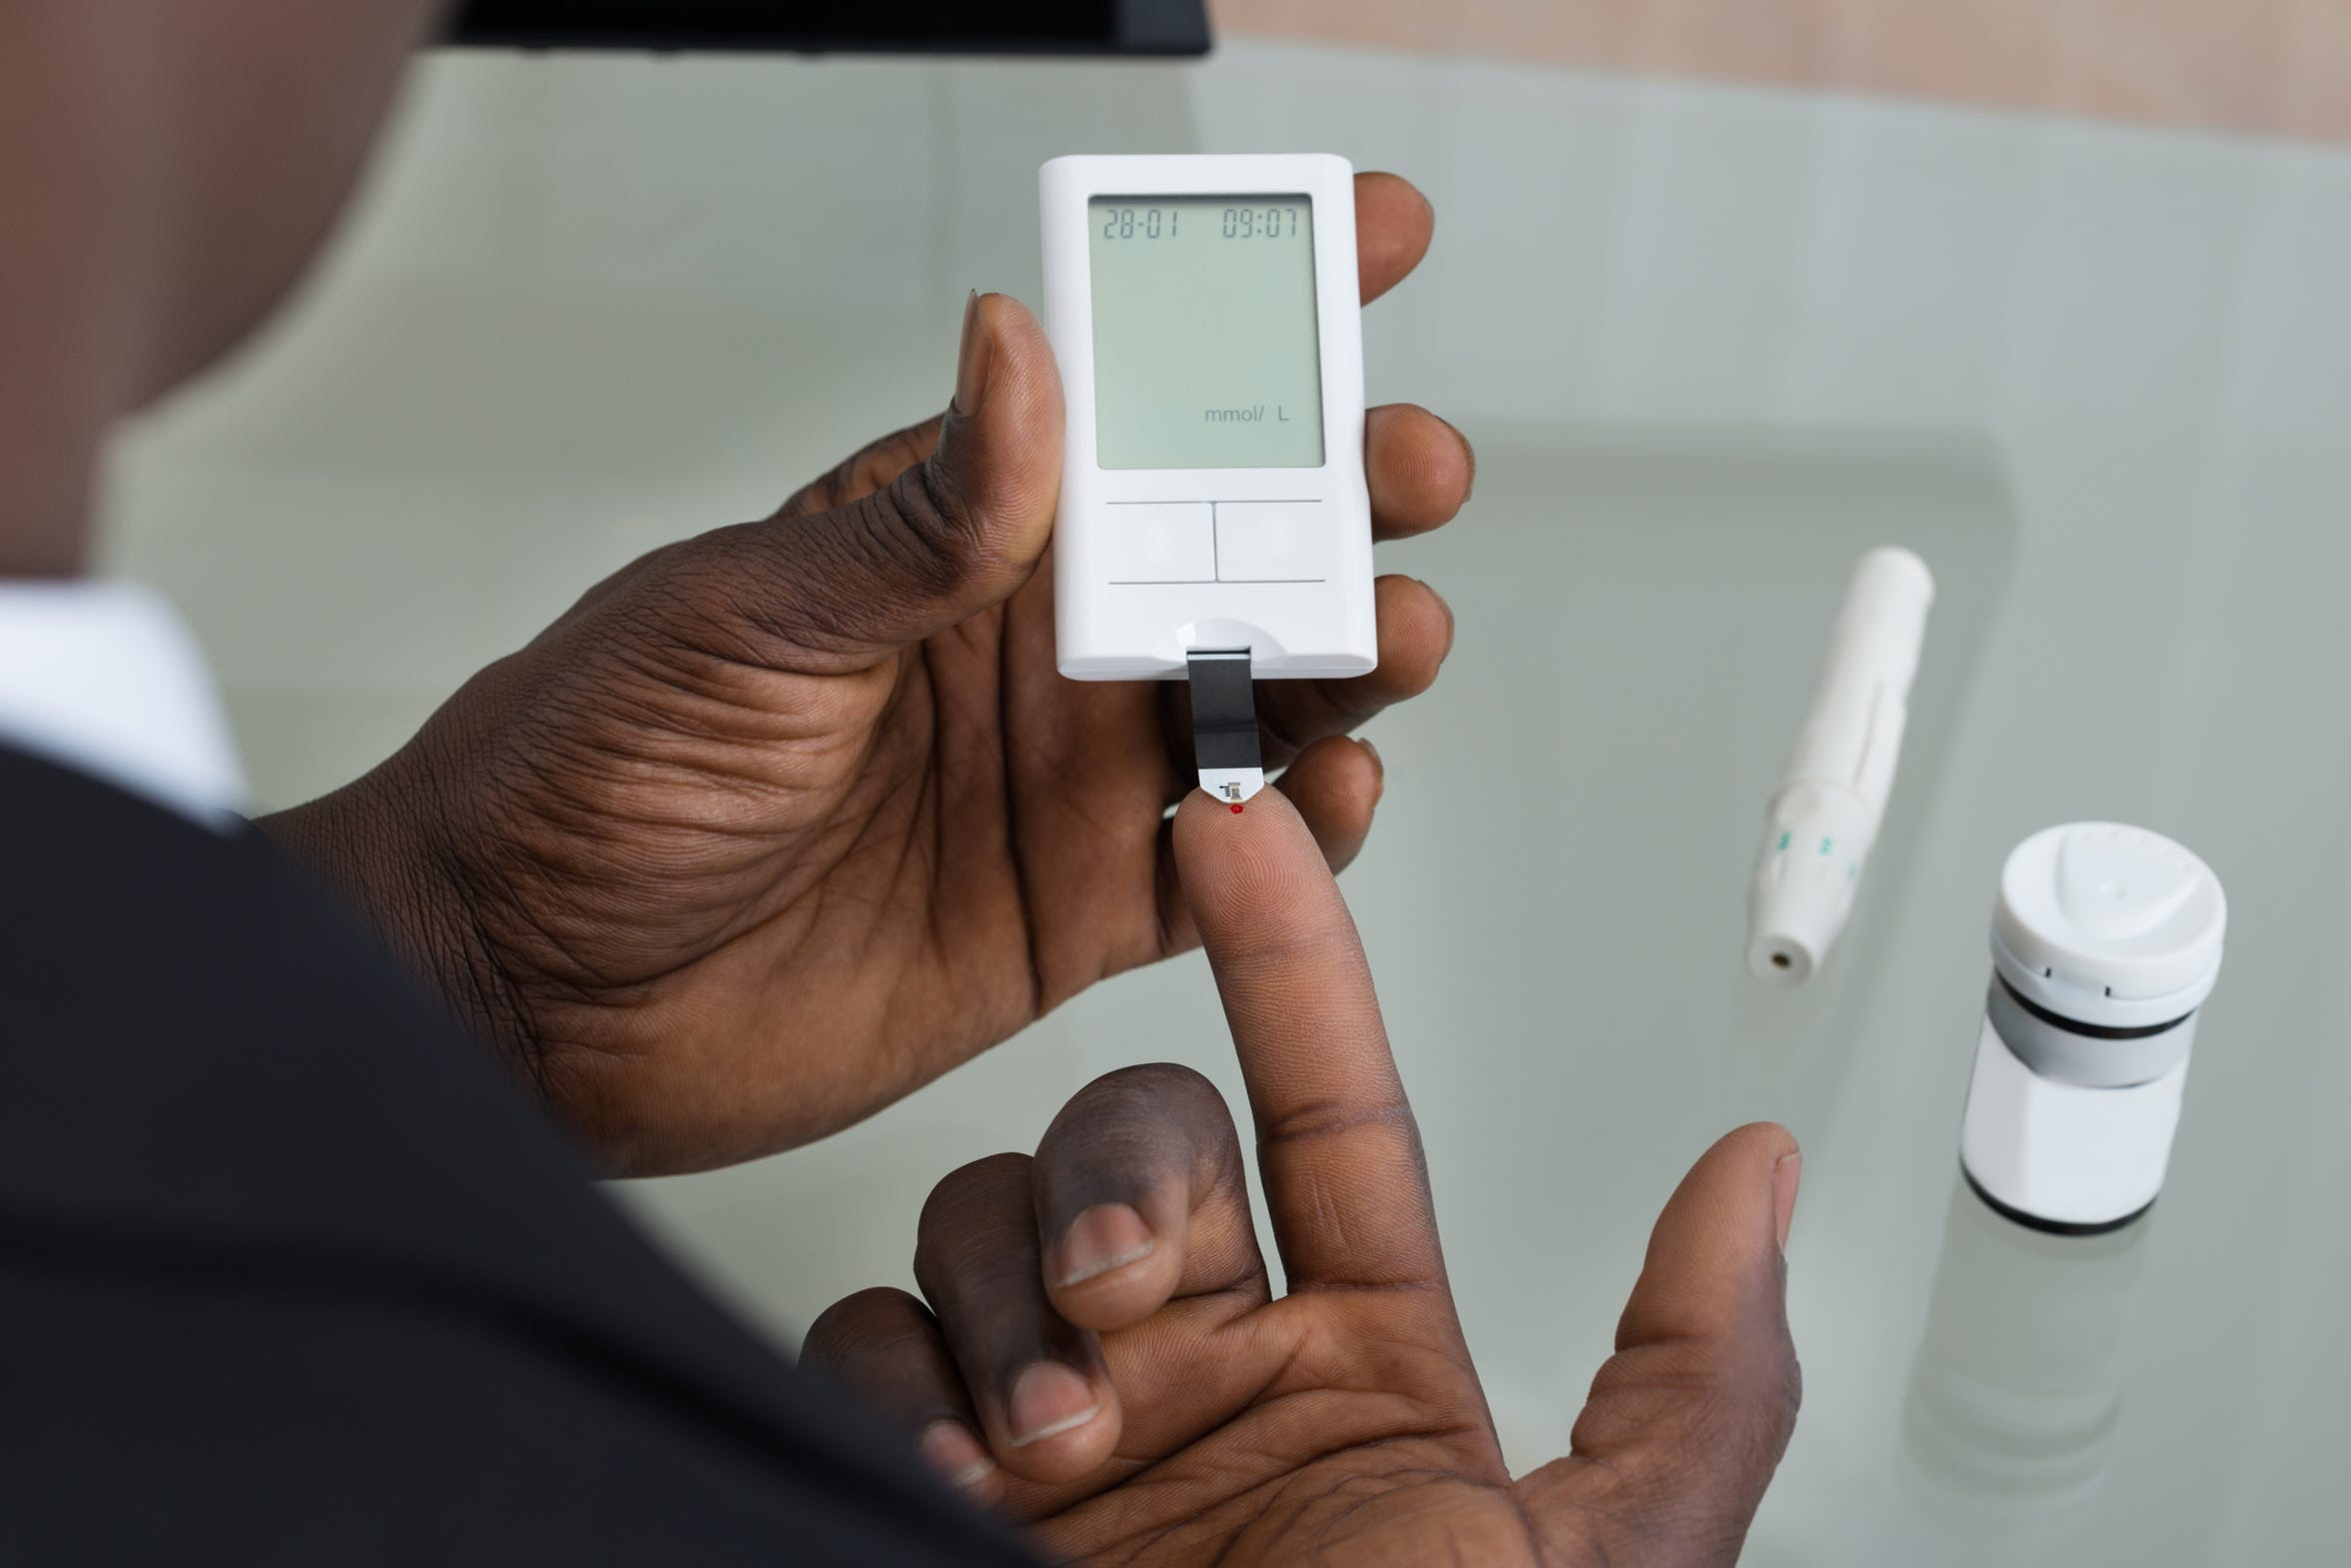 Controlling blood sugar levels is crucial in preventing diabetic retinopathy, because elevated blood sugar levels can damage the blood supply to the retina.